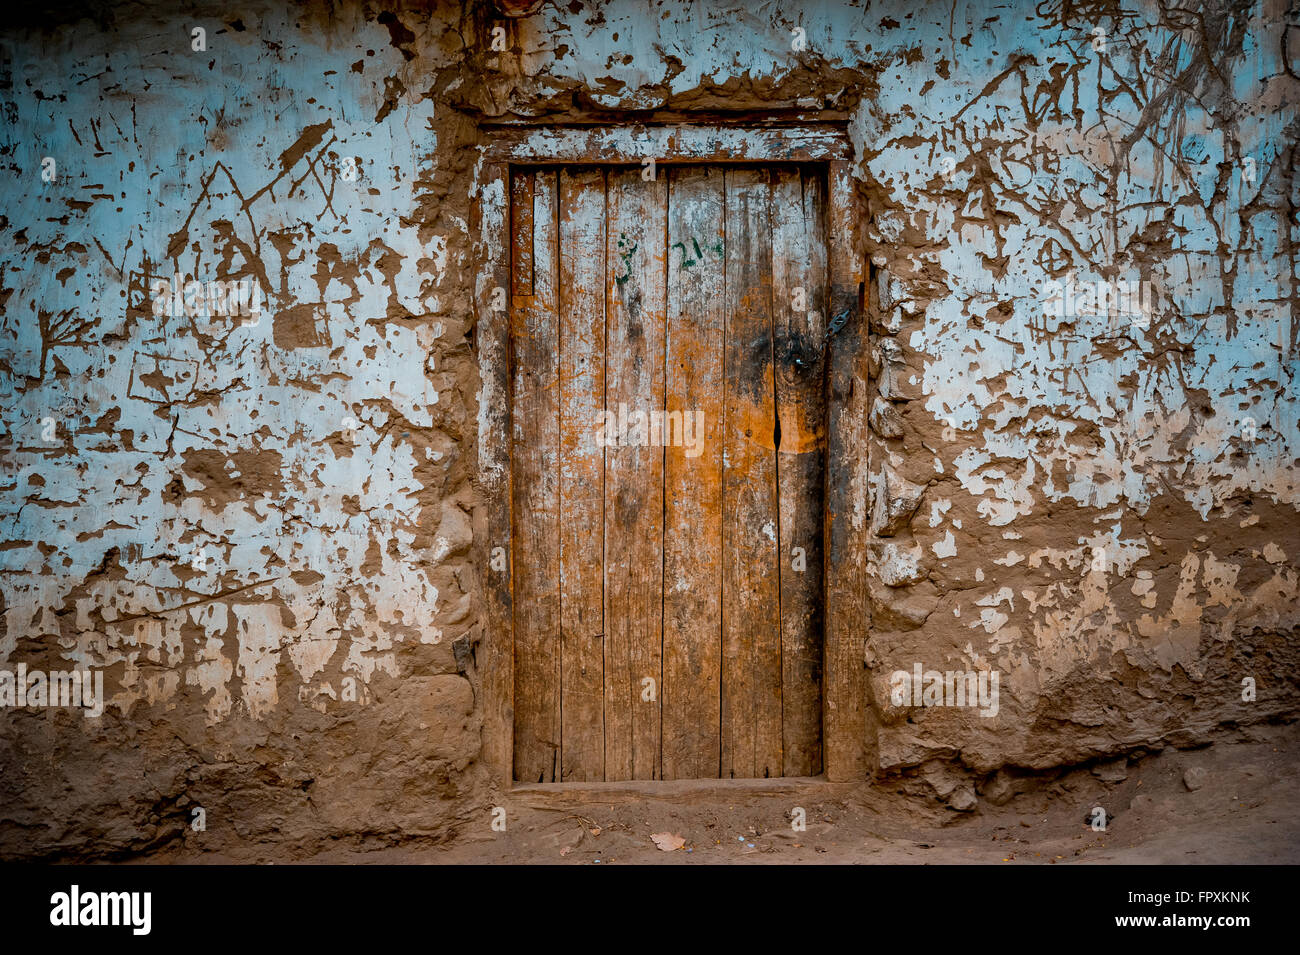 old doors in Hunza Village - Stock Image